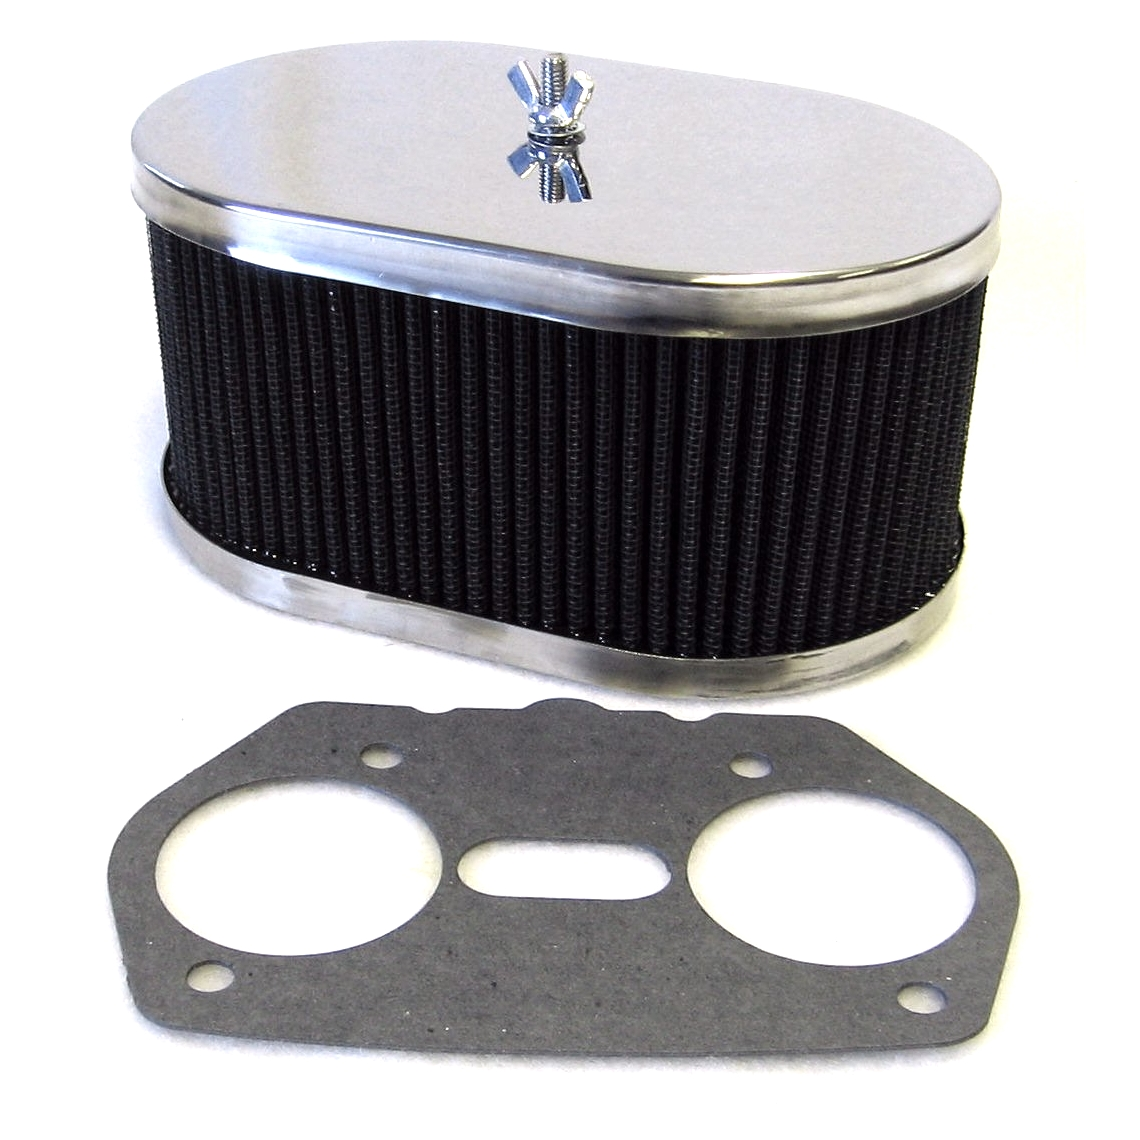 WEBER IDF / DELLORTO DRLA 36 / 40 / 44 / 45 / 48 karburátor 1x AIR FILTER KIT